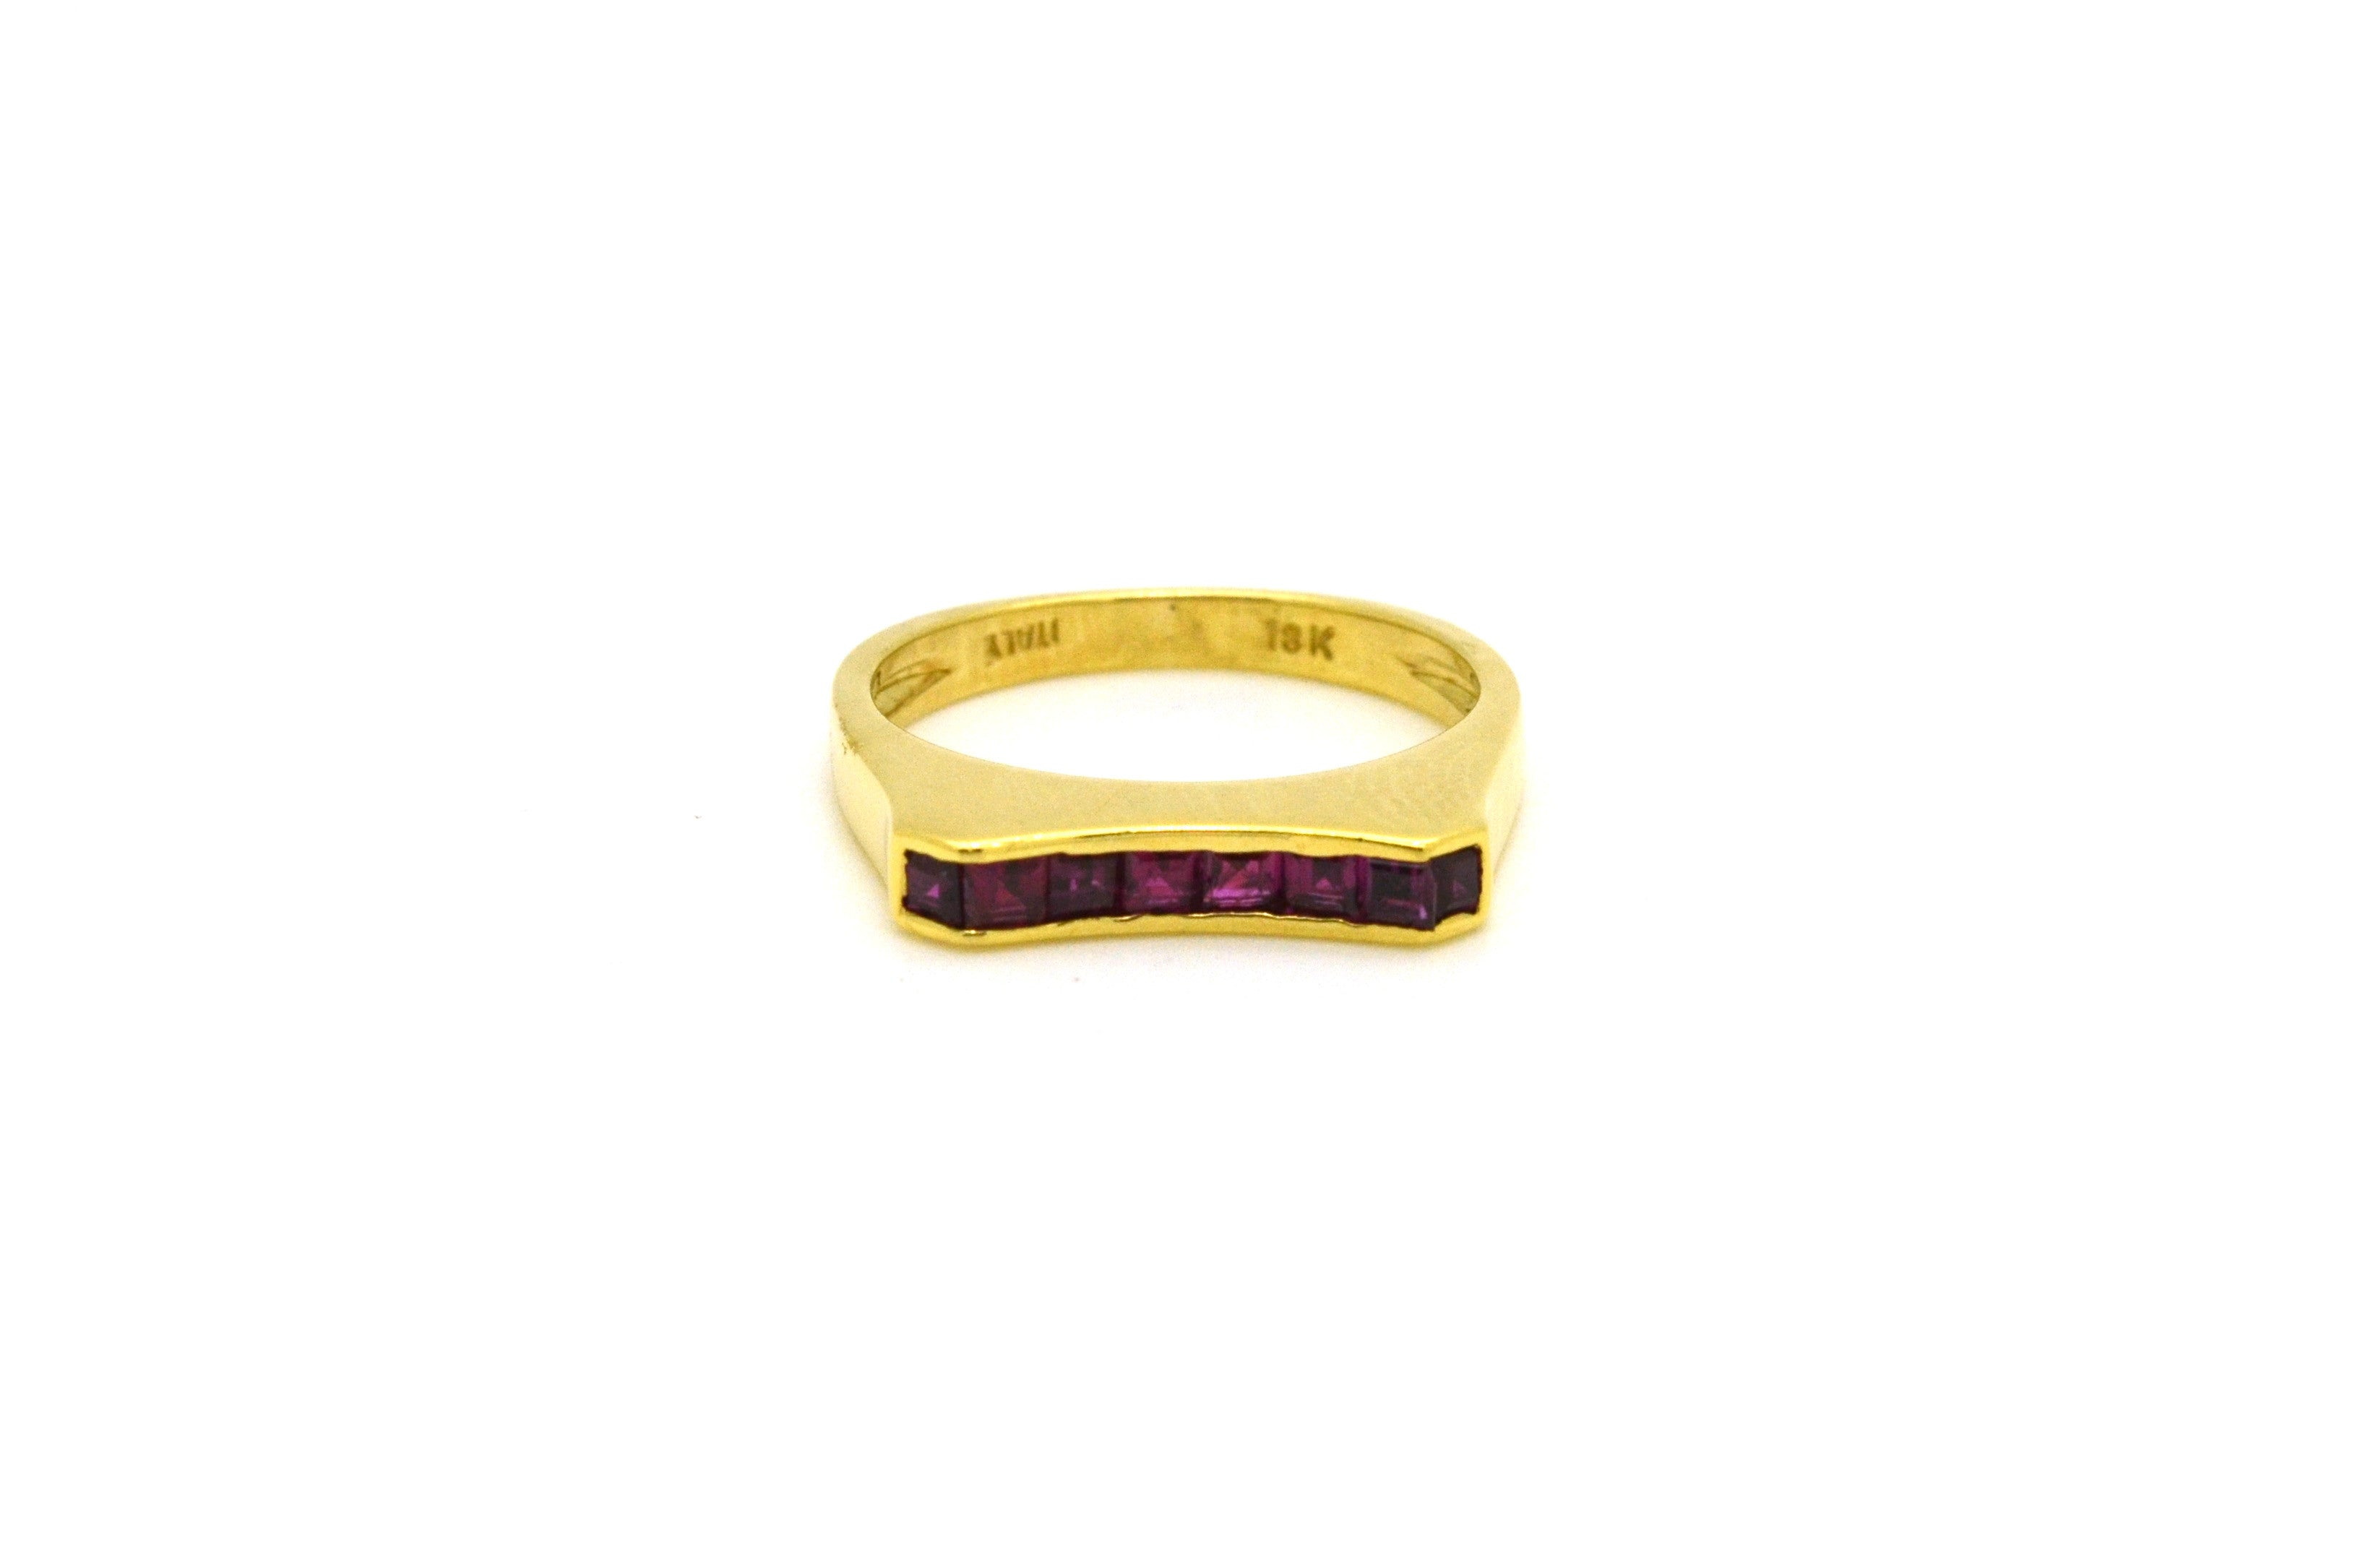 18k Yellow Gold Square Channel Set Red Ruby Band Ring - .40 ct. total - Size 6